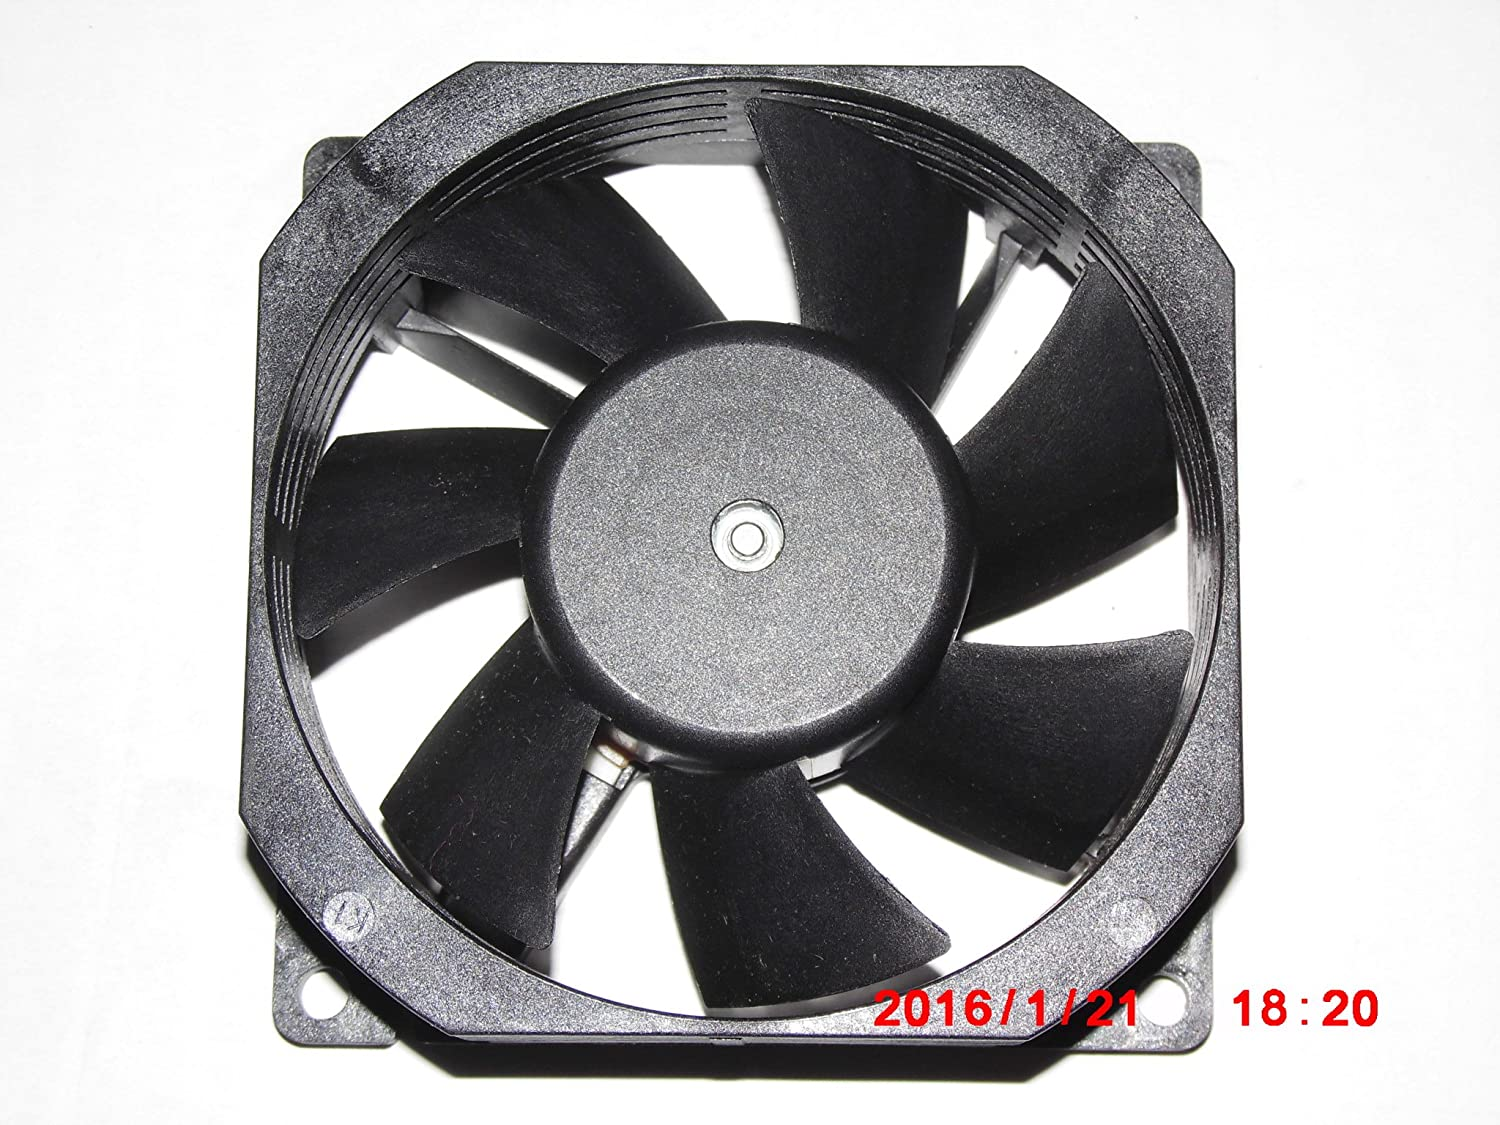 FBL08A12L 12V 0.1A 3Pin Without Wire for Toshiba 50HP95 23125951 23125929 42HP83 42HP95 Plasma Cooling Fan